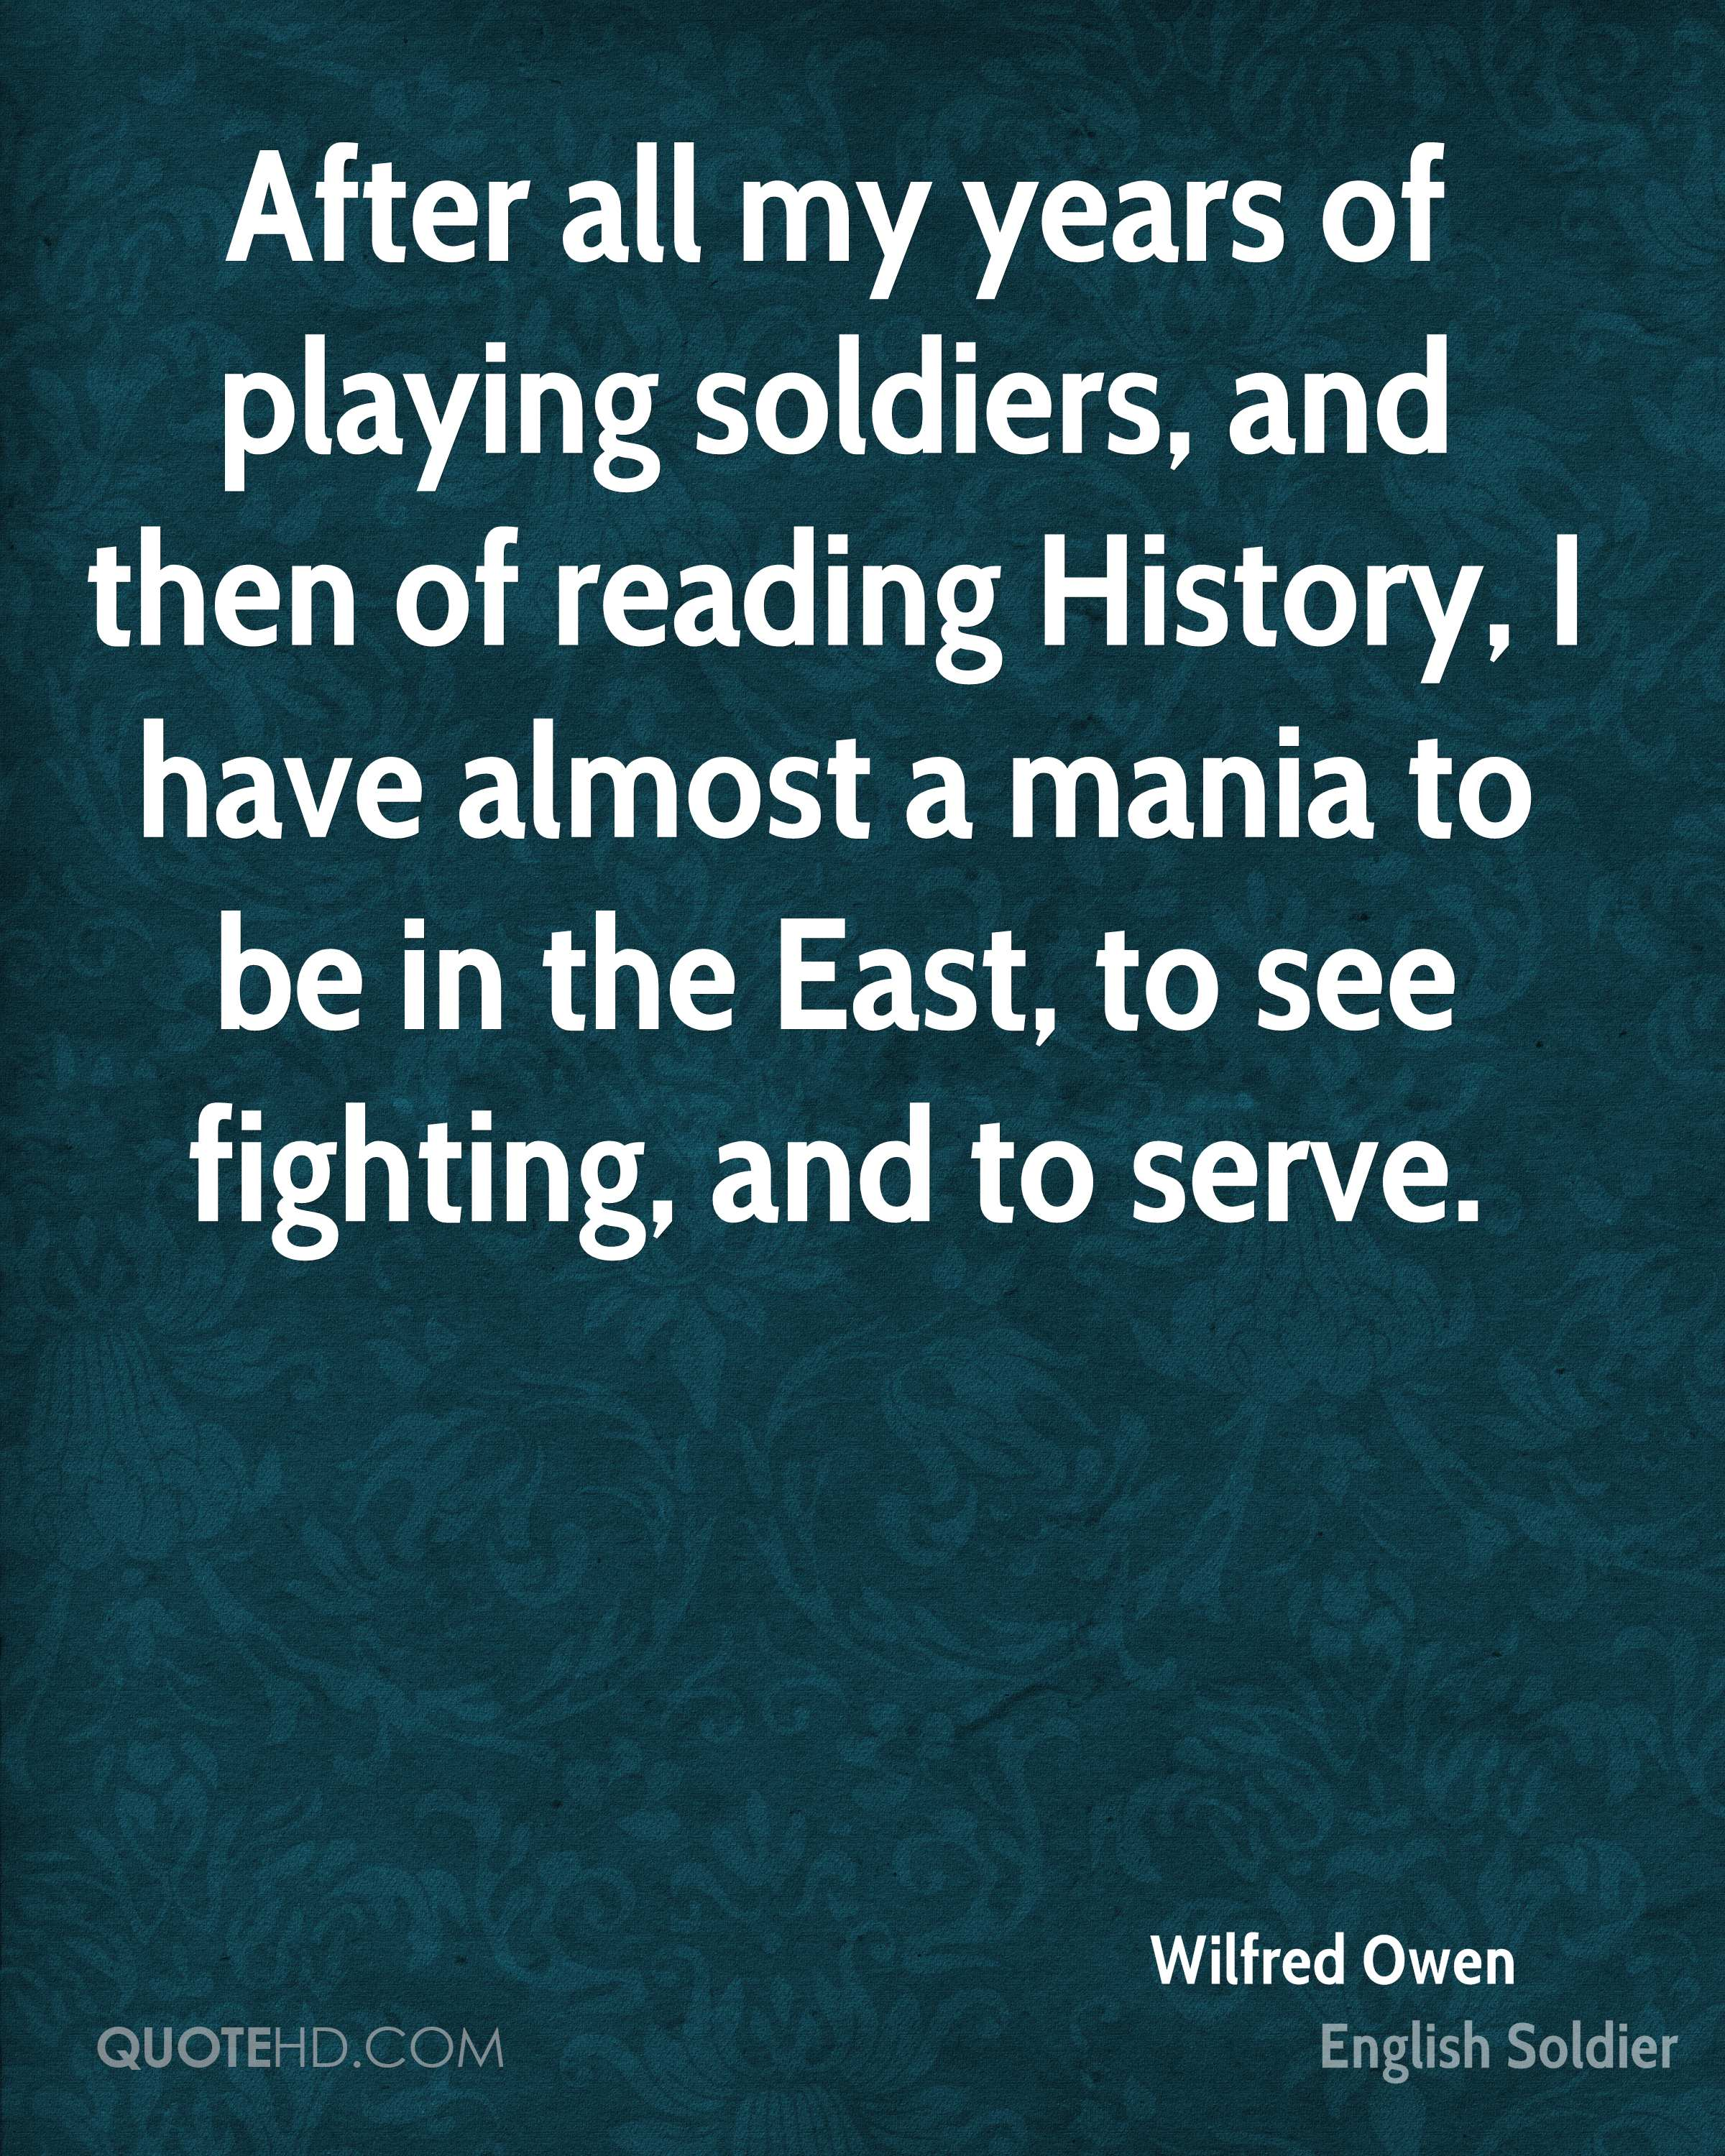 After all my years of playing soldiers, and then of reading History, I have almost a mania to be in the East, to see fighting, and to serve.